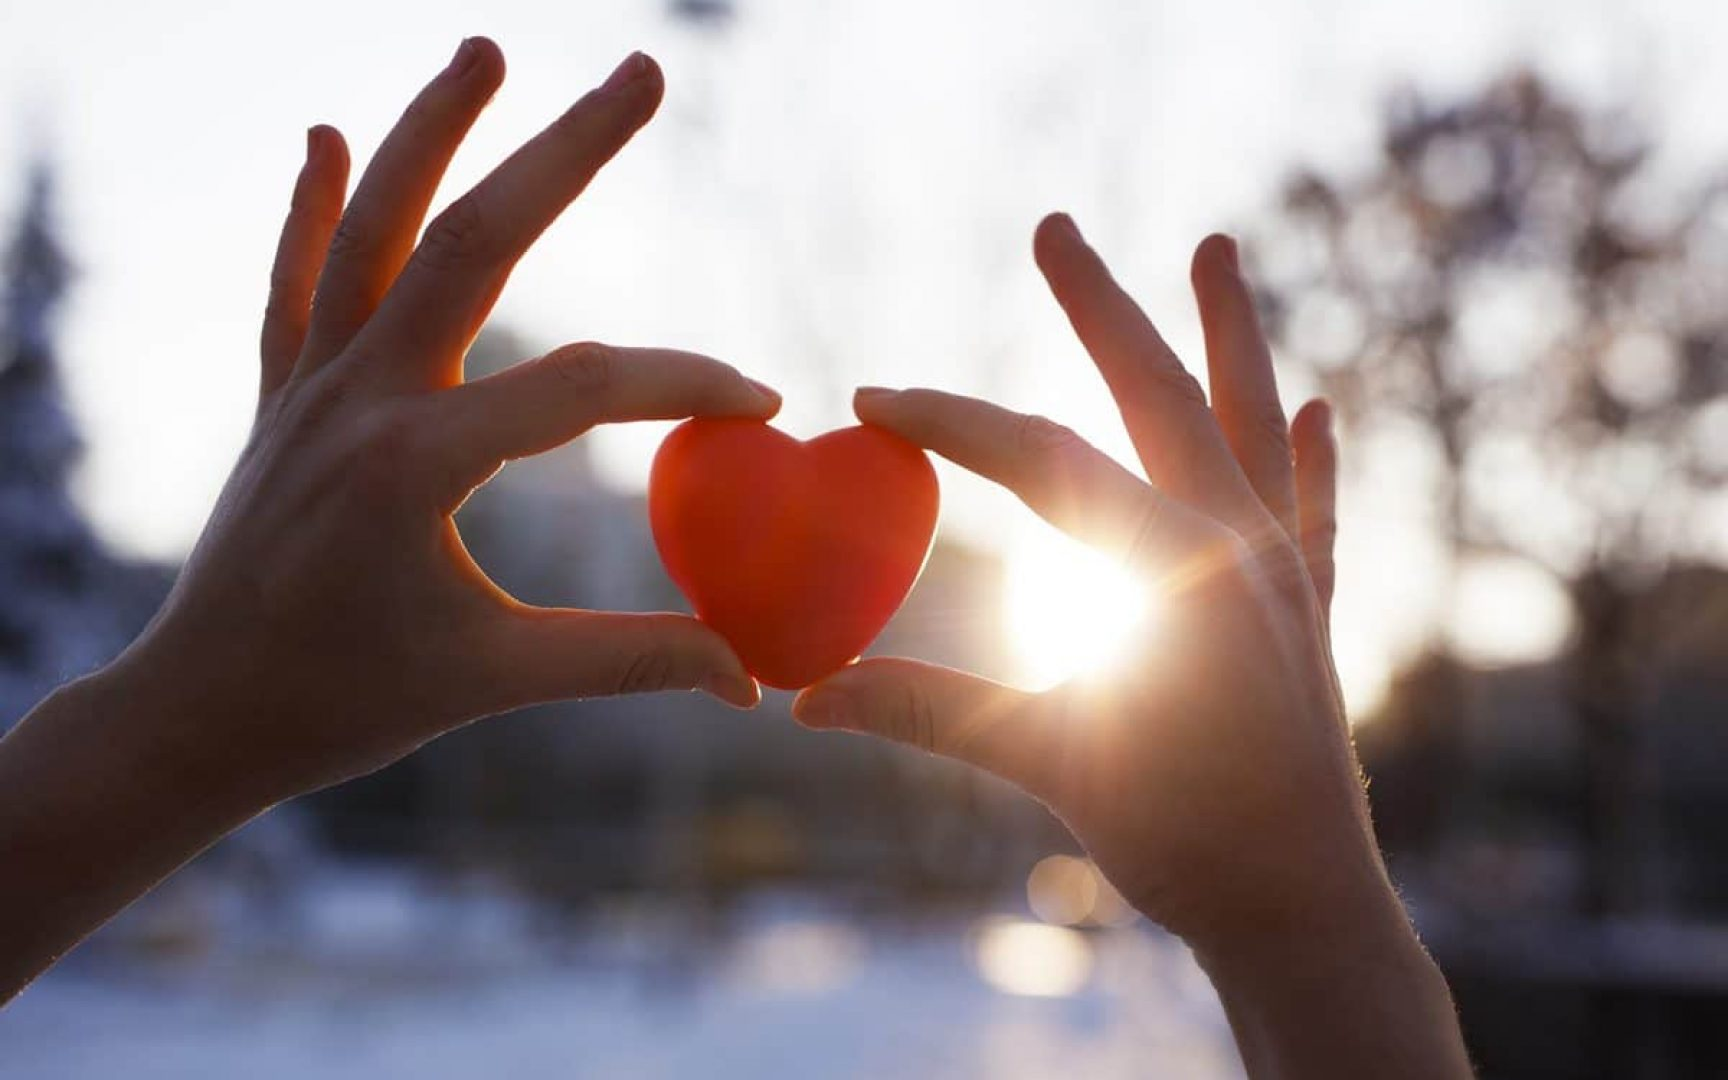 Woman holding heart-shaped red snowball, close-up of hands